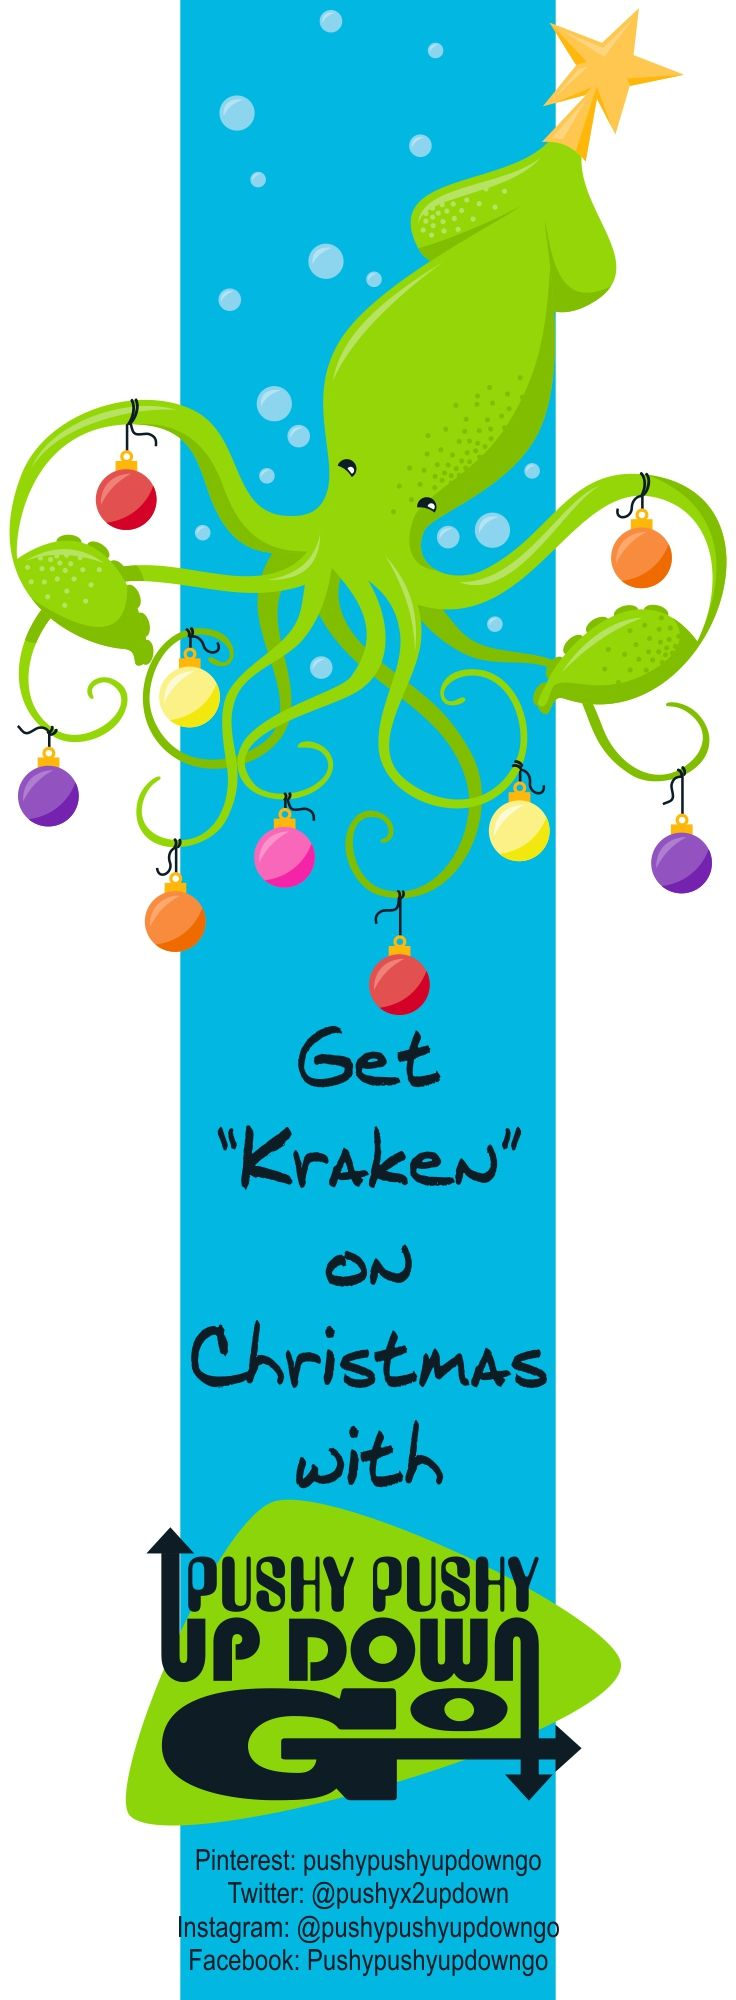 Funny Christmas Kraken Ocean Theme Holiday Cards Set, Greeting Card & Note Cards Set, Thank You Cards Set - If you're looking for something a little different for the holidays this year, this Funny Christmas Kraken Ocean Theme Holiday Cards Set might just be the thing for you! Perfect for Christmas or just for some general winter fun, these holiday cards make wonderful note cards, cute thank you cards, delightful greeting cards, and even funny invitations.